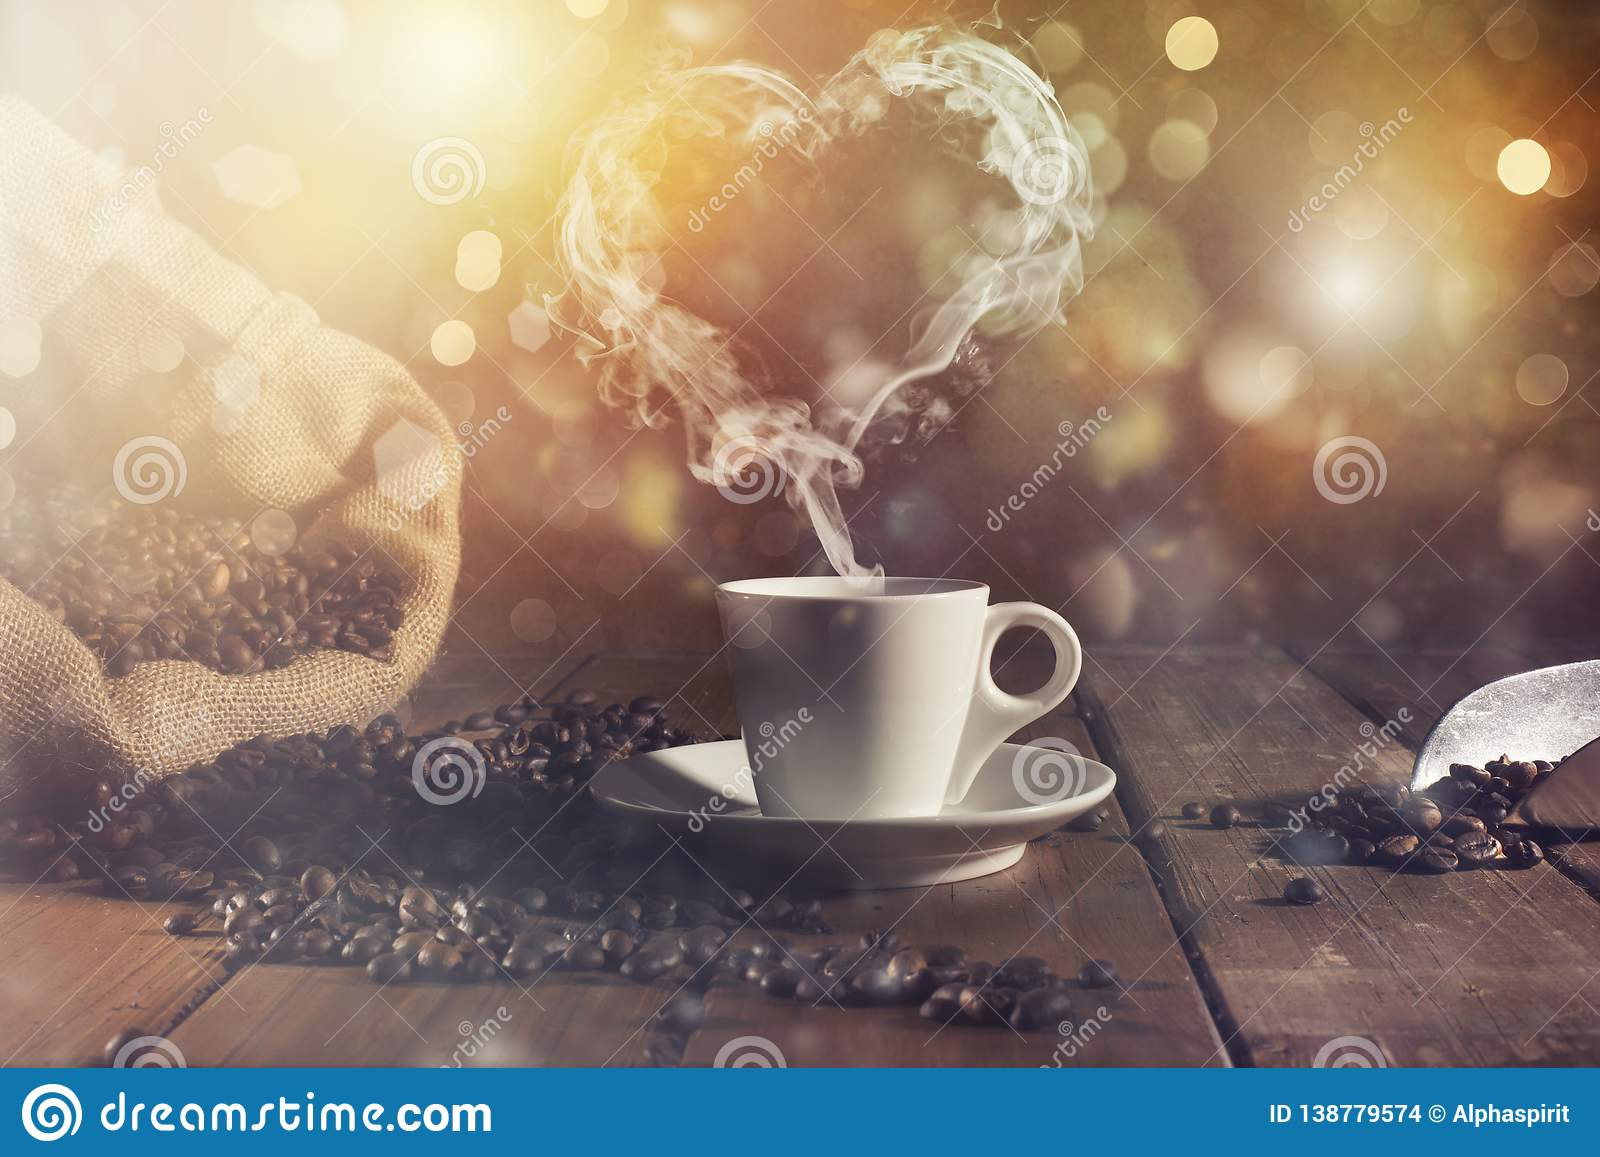 Coffee cup with a smoke shaped as an hearth